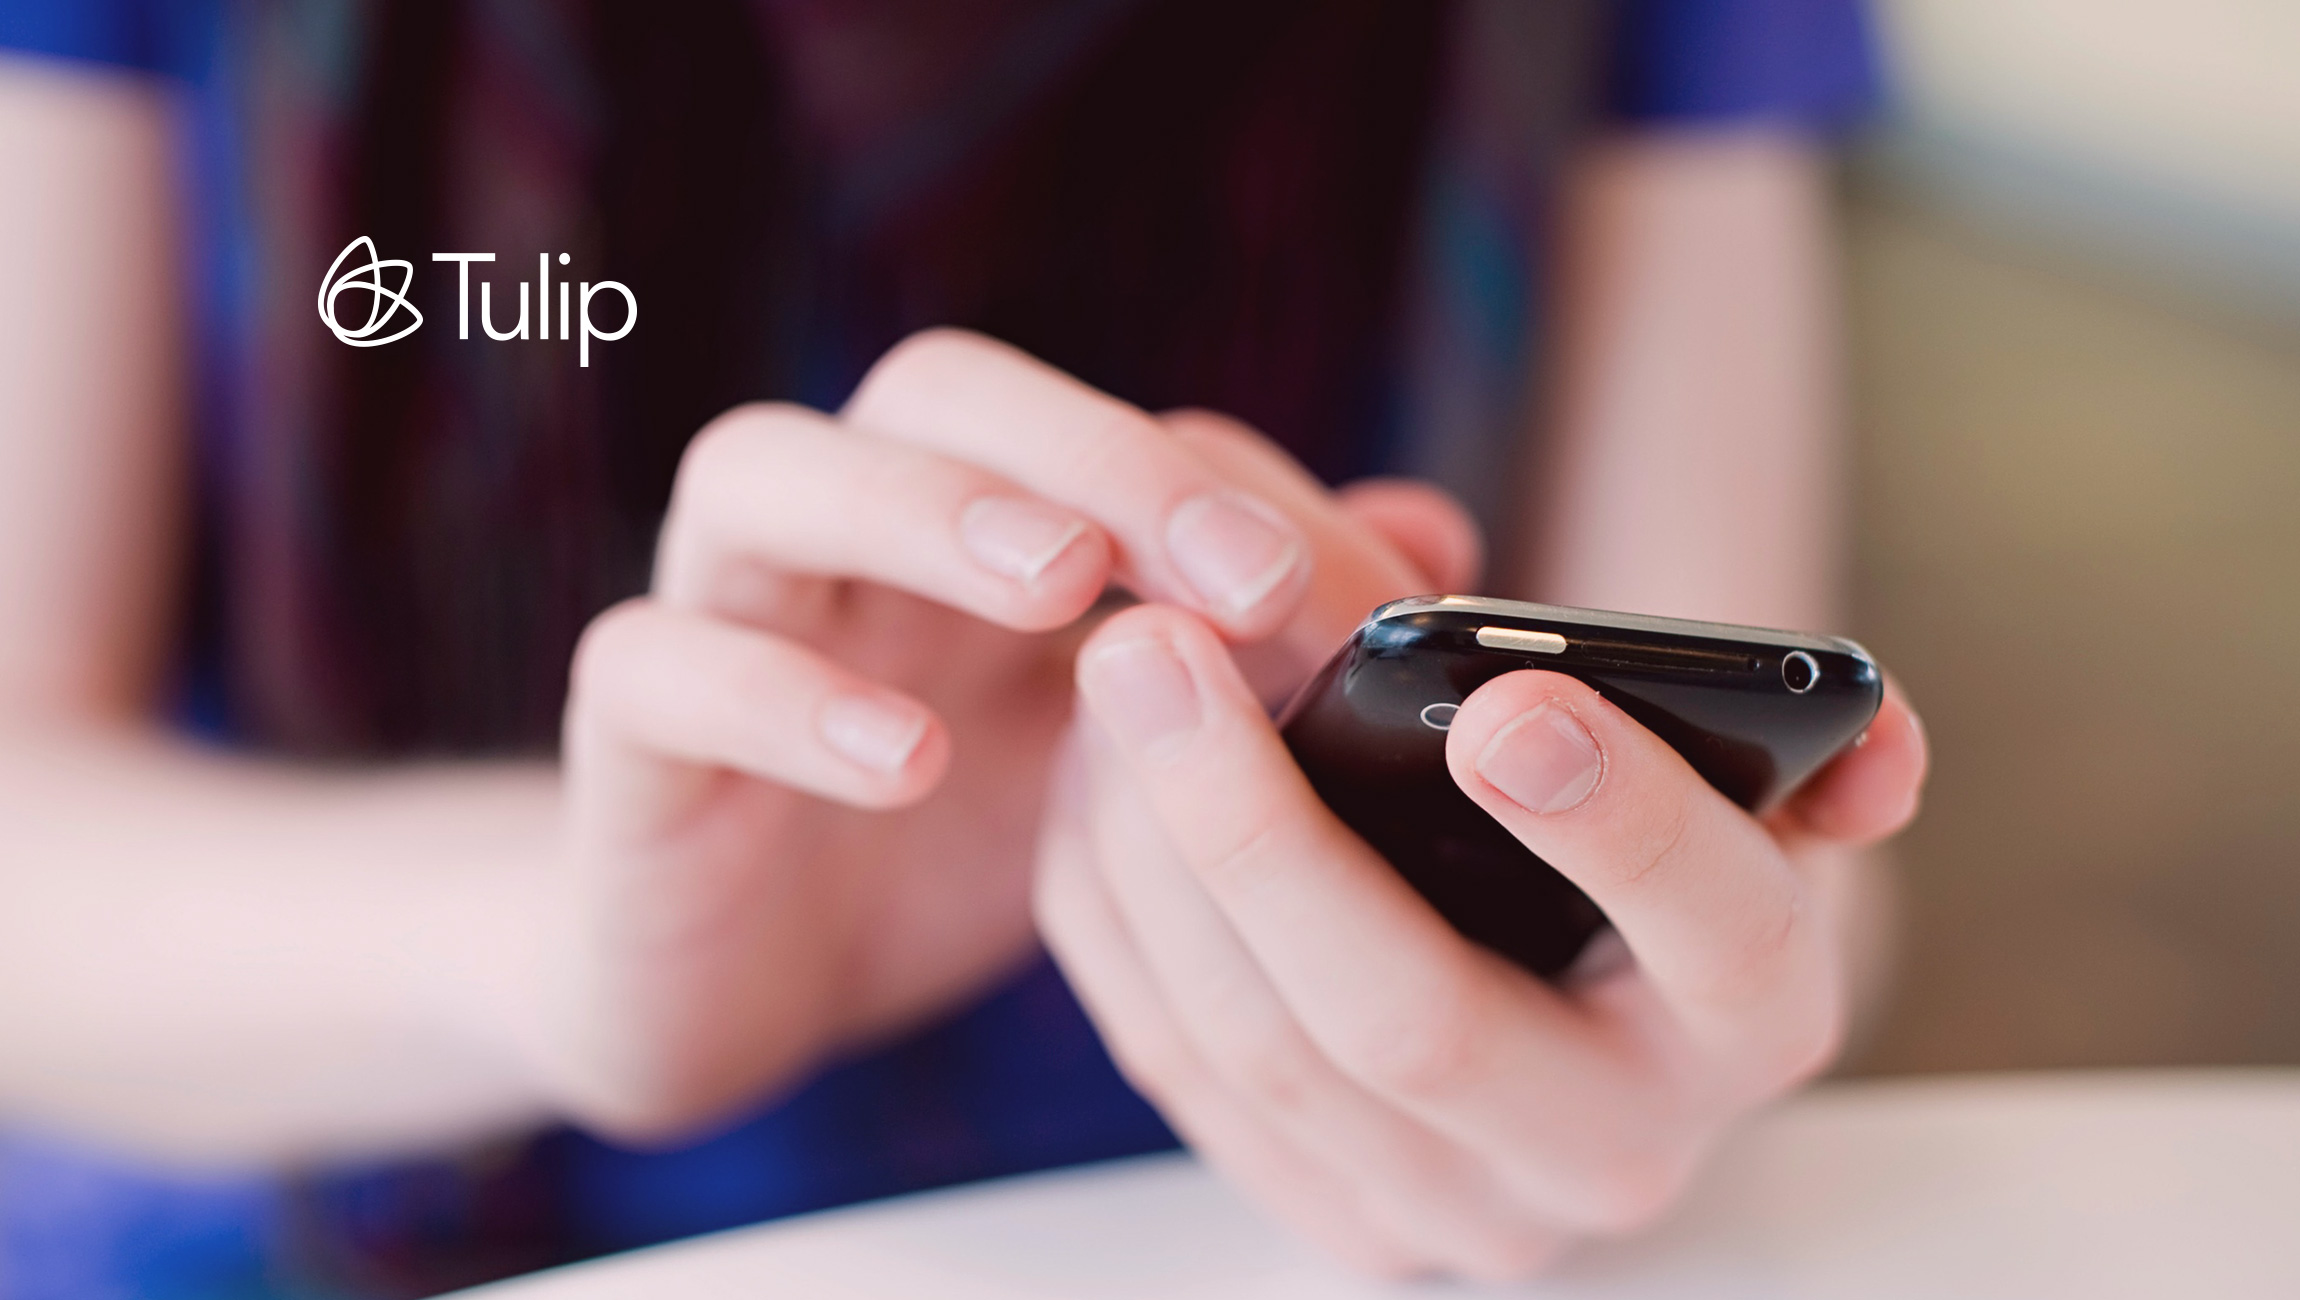 Tulip Launches Checkout Nova - Enabling Retailers to Provide a Seamless Mobile Checkout Experience